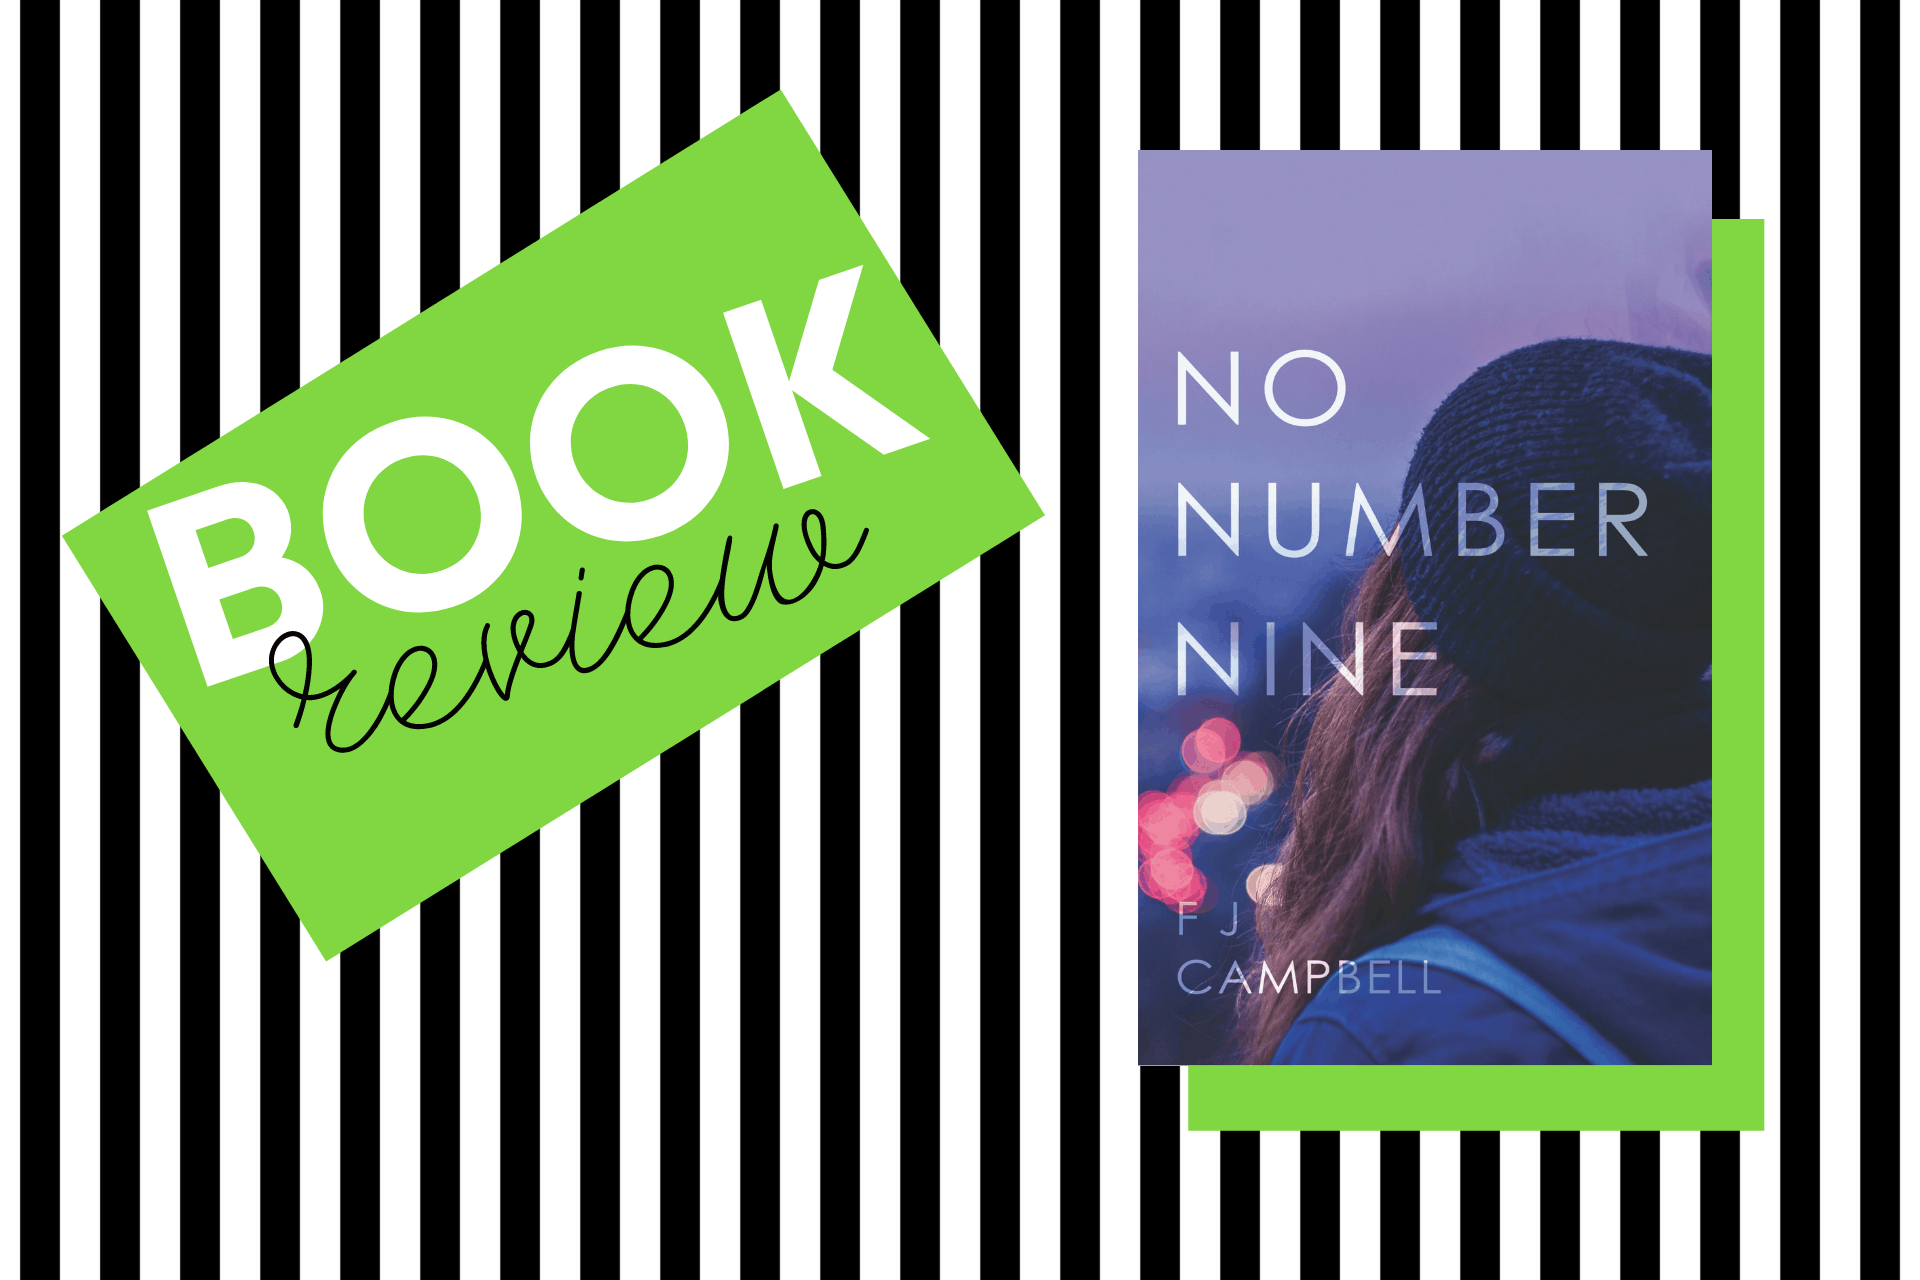 The cover of No Number Nine by F J Campbell